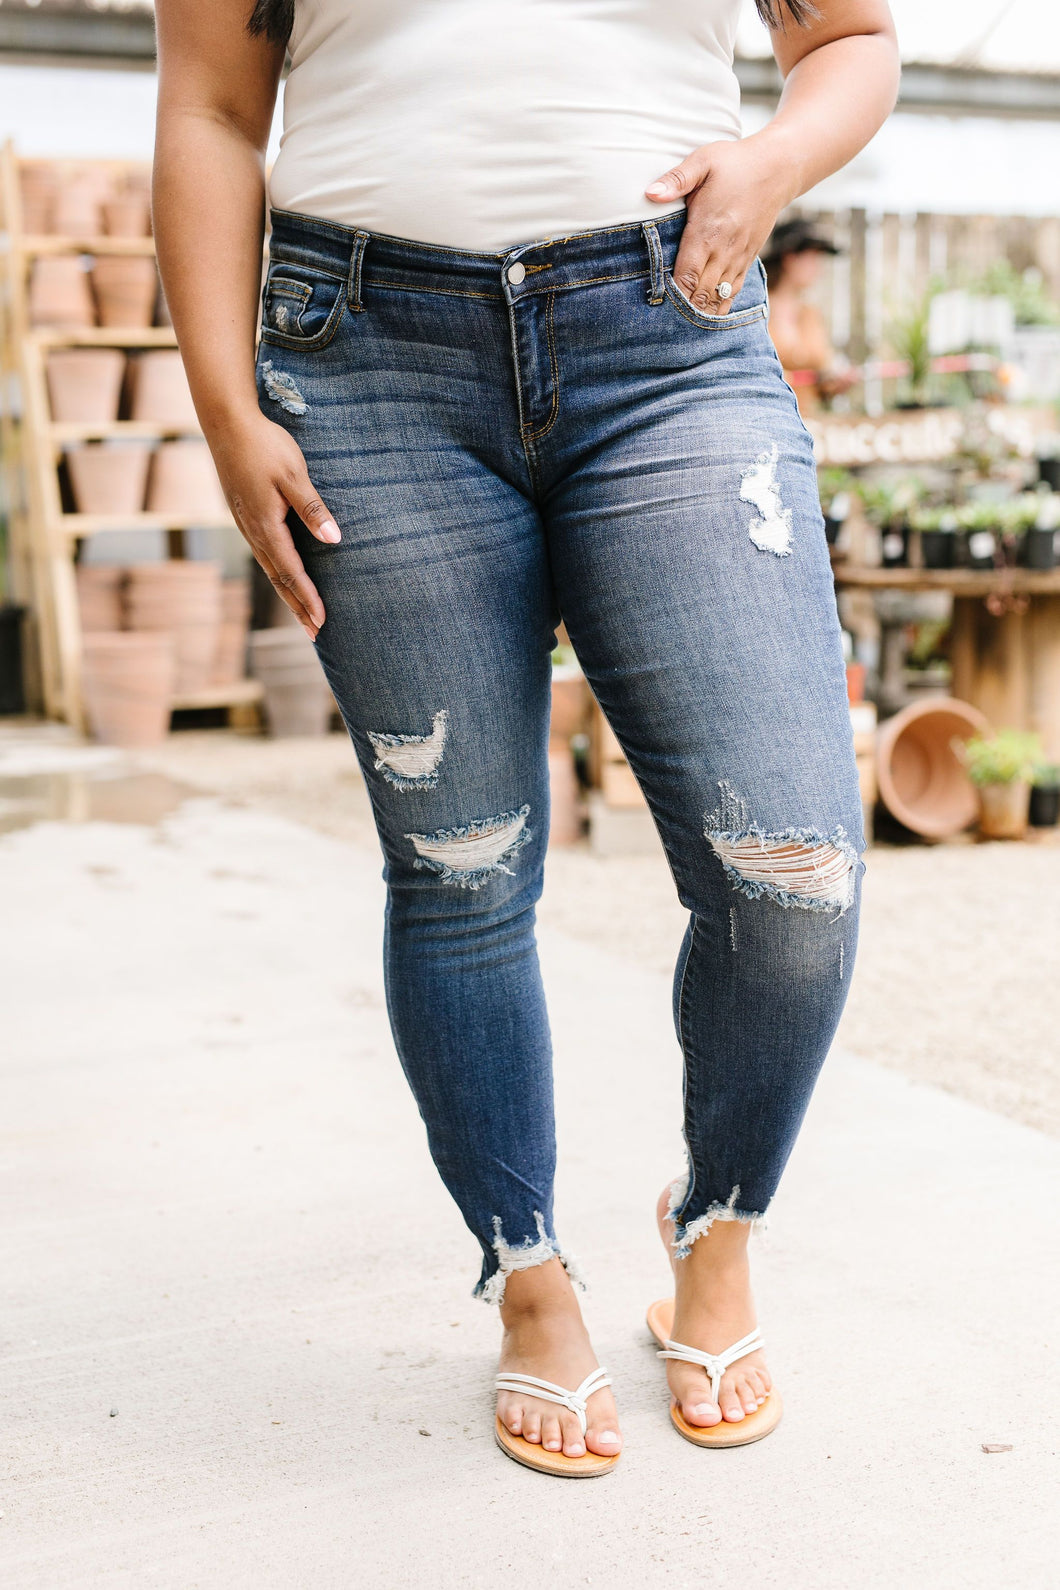 Rip Tide Jeans SAMPLE - Smith & Vena Online Boutique